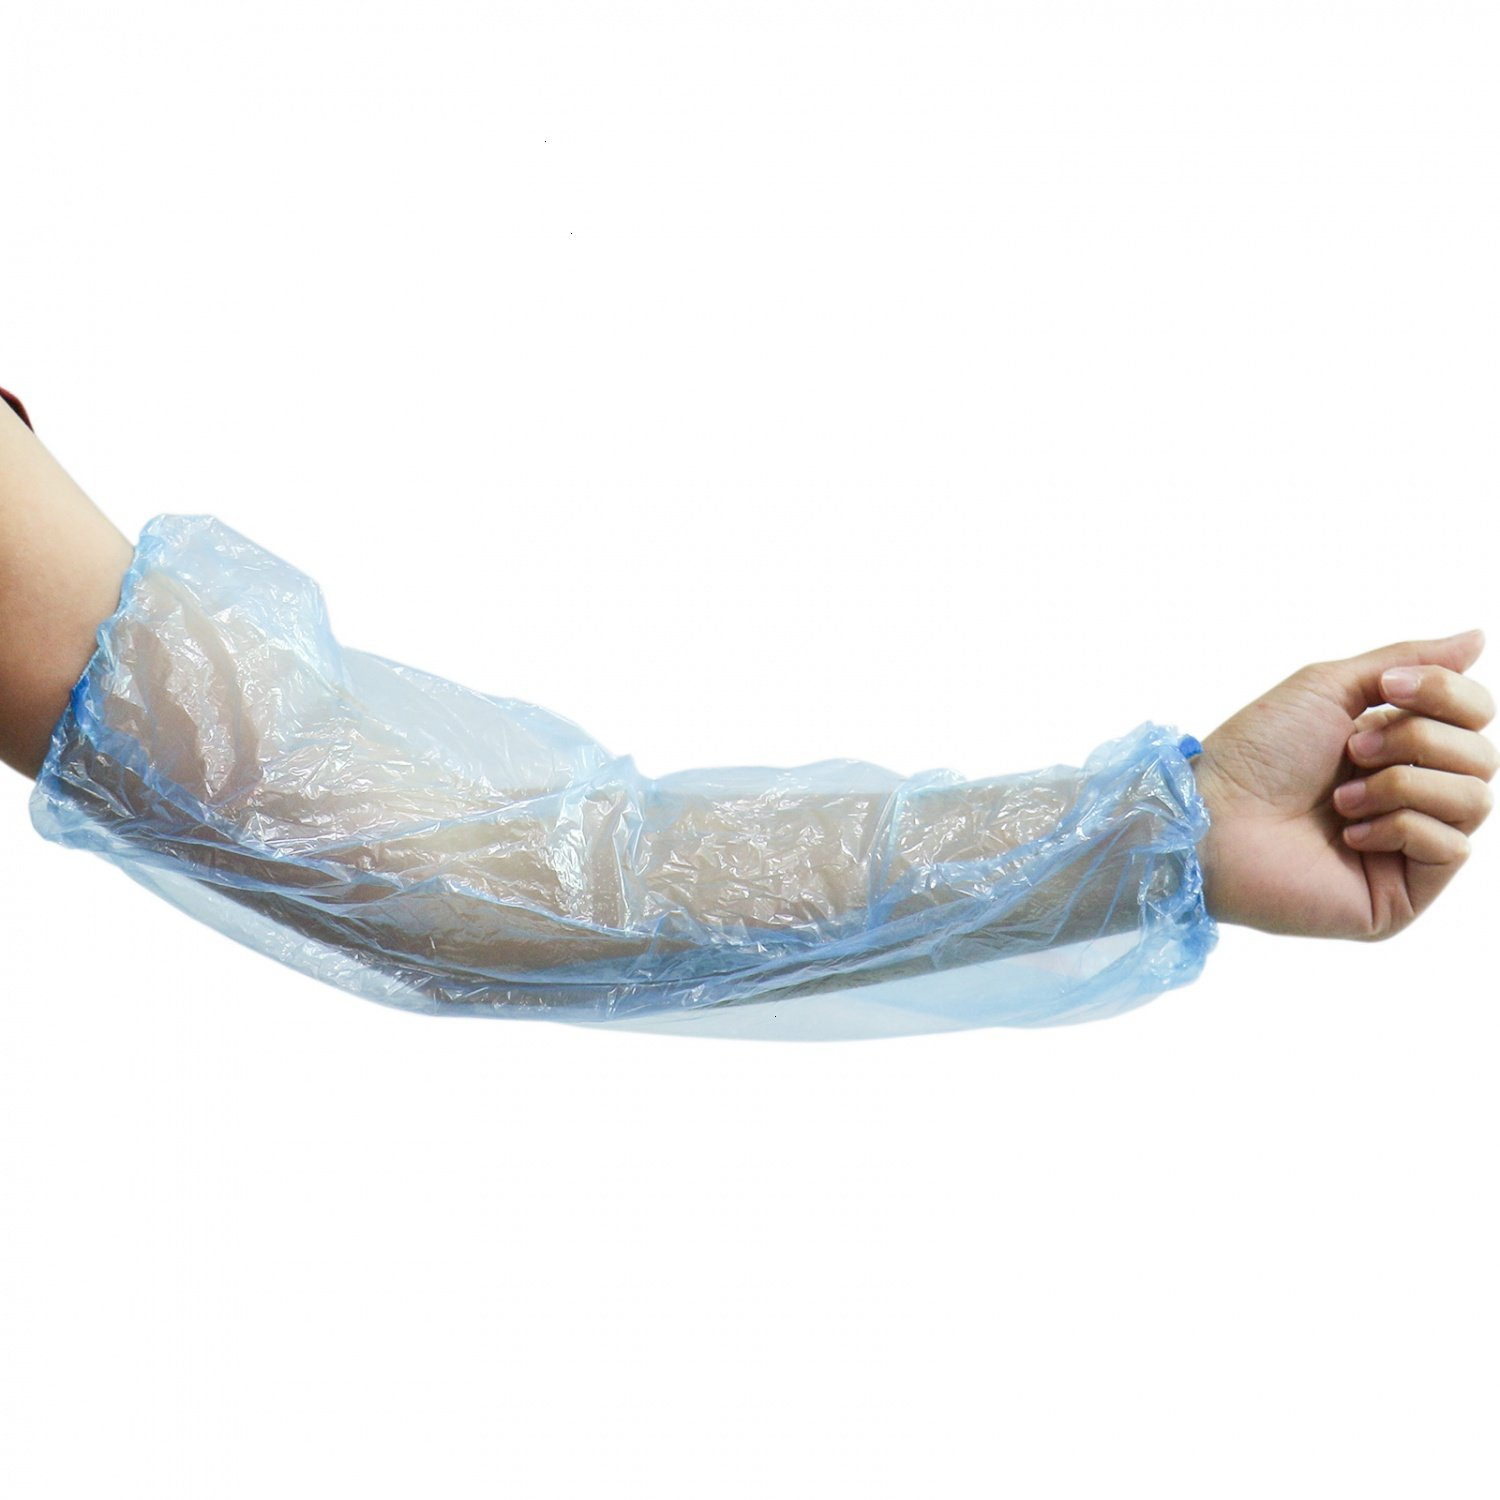 HUELE 100 Pcs Disposable Arm Sleeves Waterproof Covers for Arm Protection with Elastic End - Blue